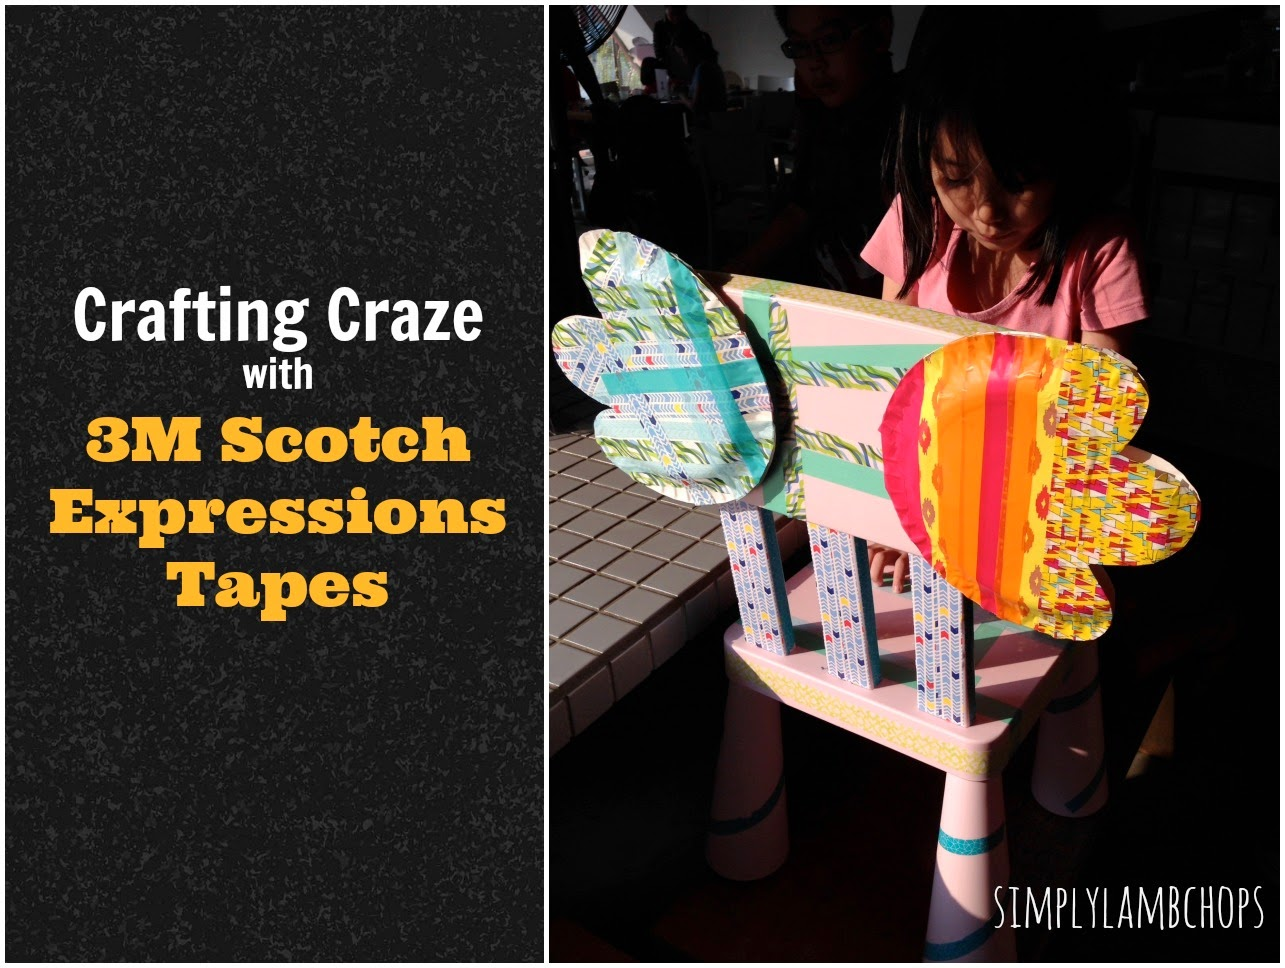 Crafting Craze with 3M Scotch Expressions Tapes review by Simply Lambchops